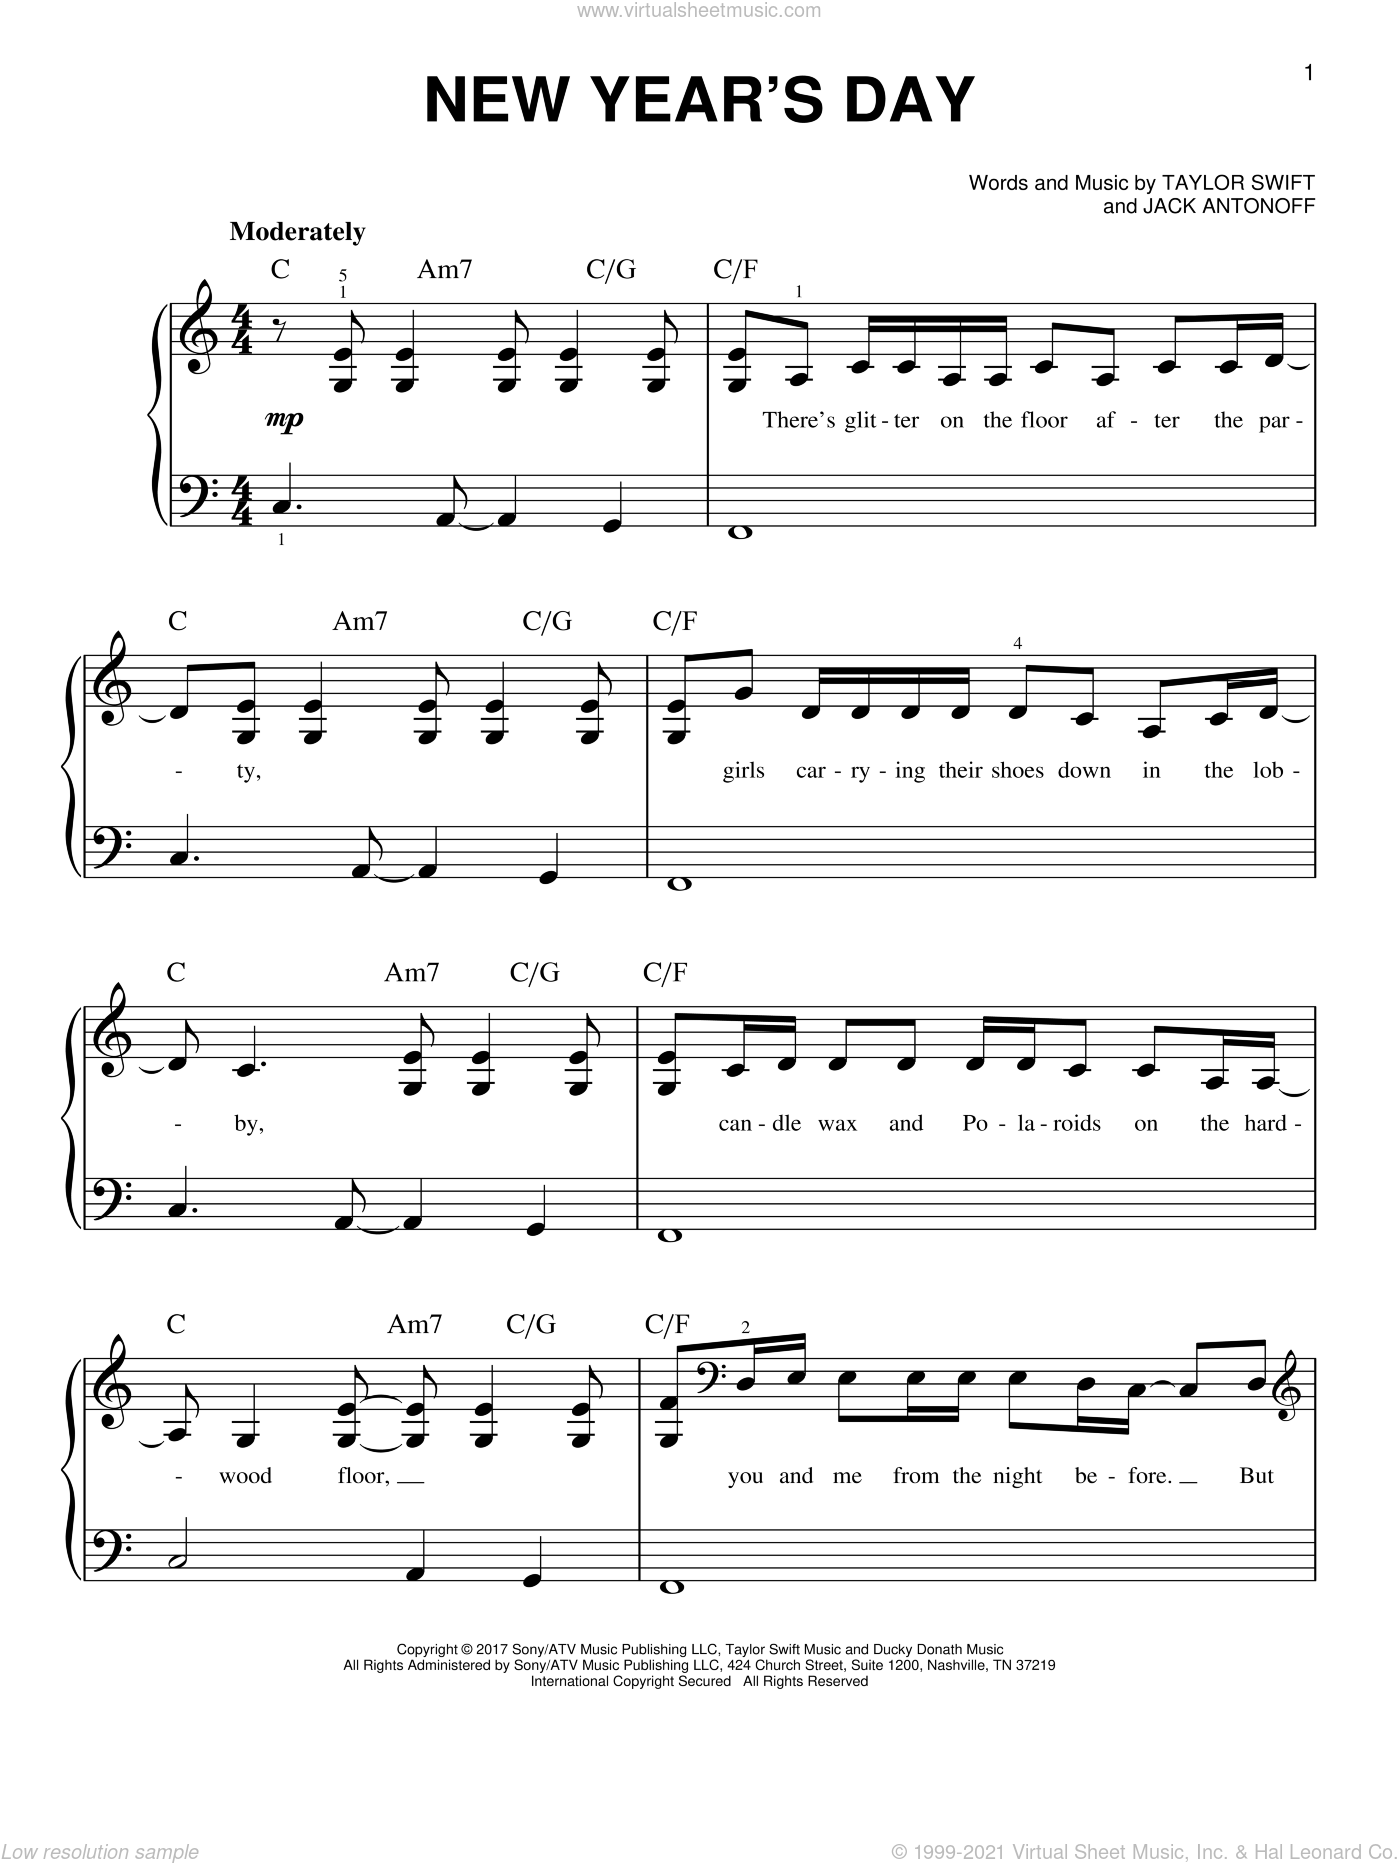 New Year's Day sheet music for piano solo by Taylor Swift and Jack Antonoff, easy skill level